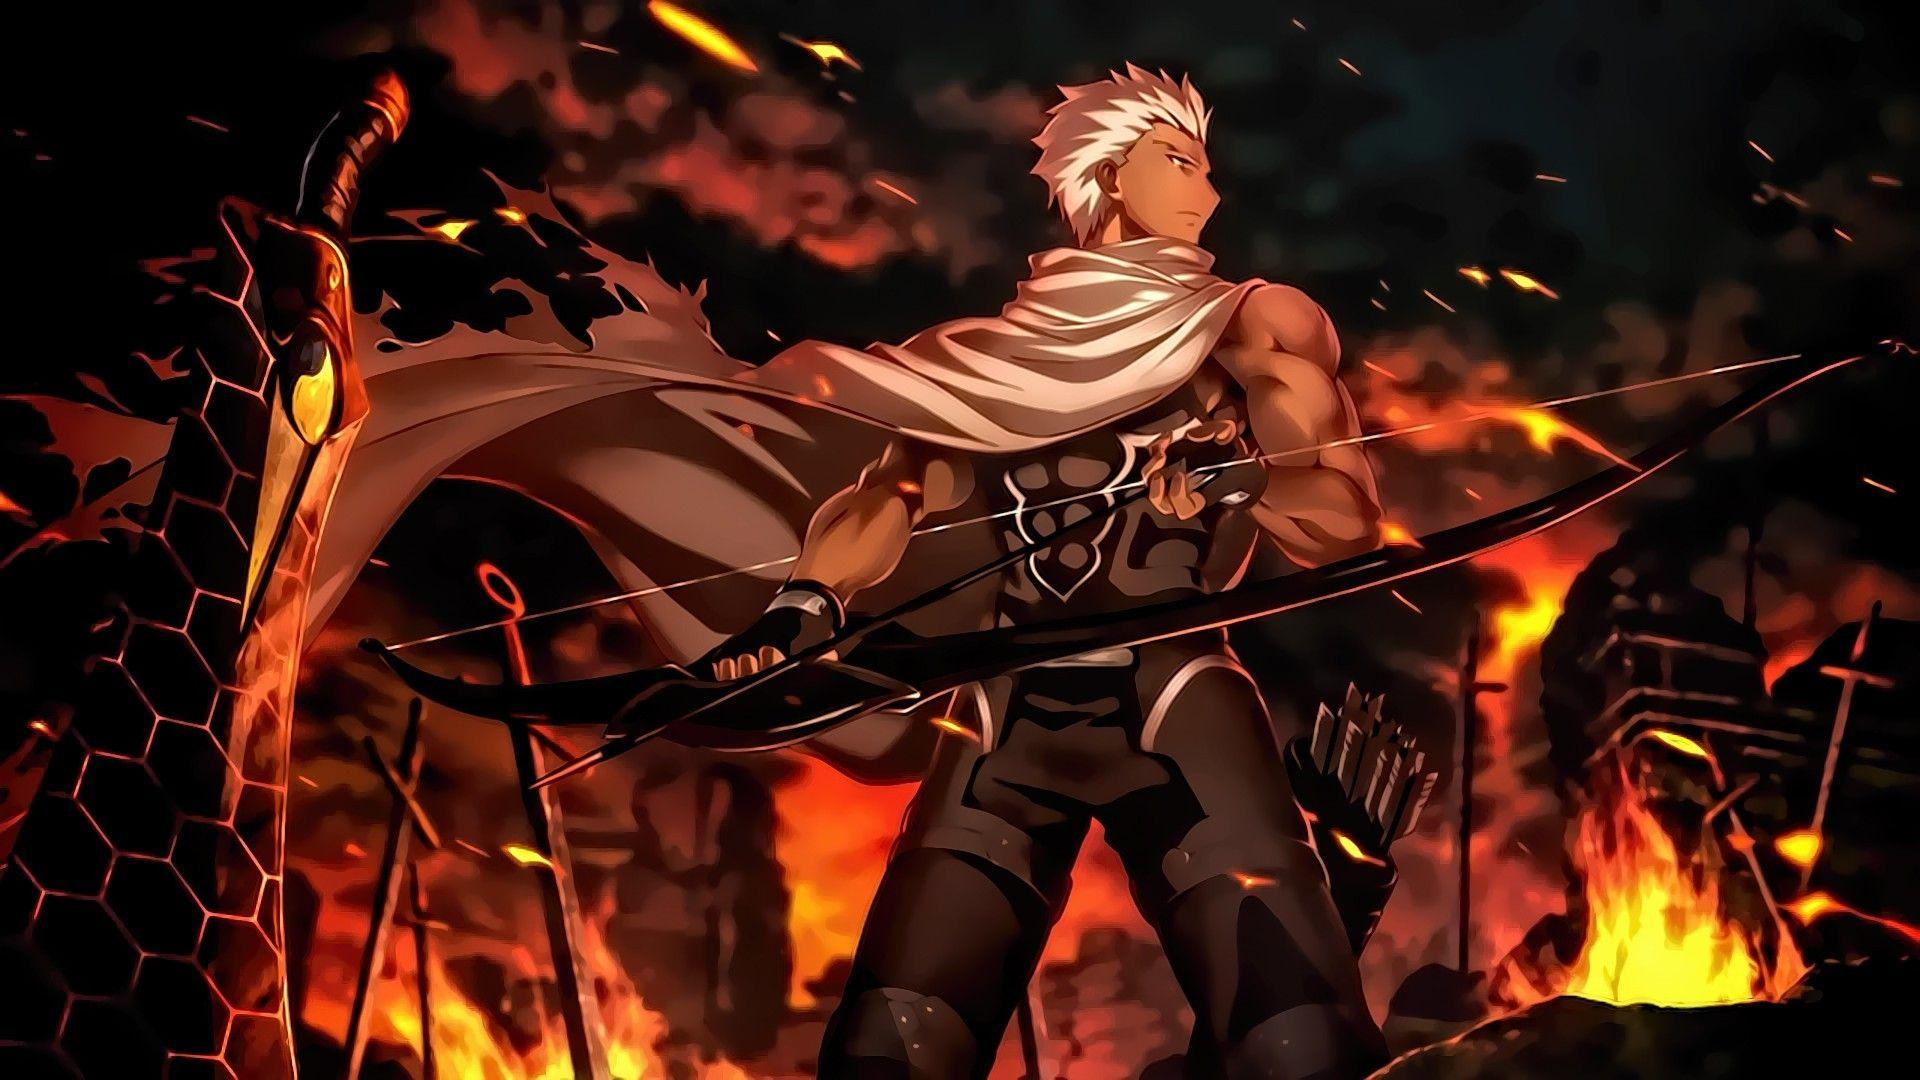 Archer Fate Stay Night Wallpapers   Top Archer Fate Stay 1920x1080